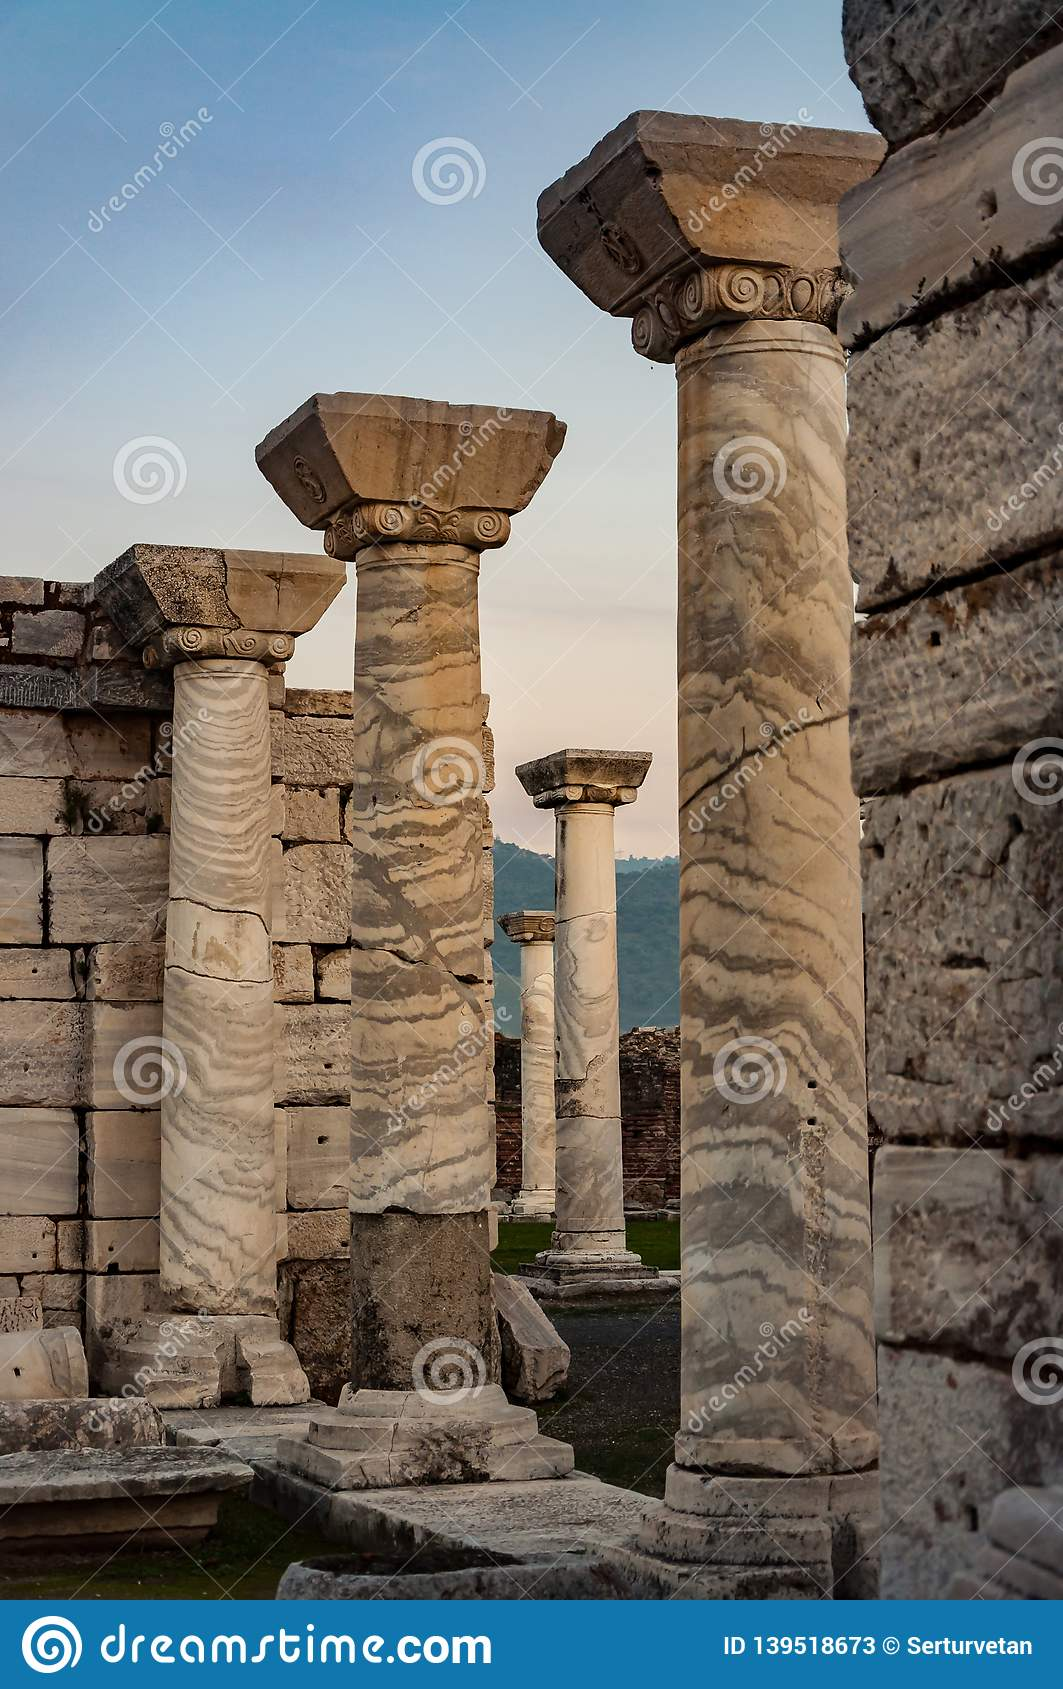 Colmnar part of temple in Ephesus, Turkey. The ancient city is listed as a UNESCO World Heritage Site